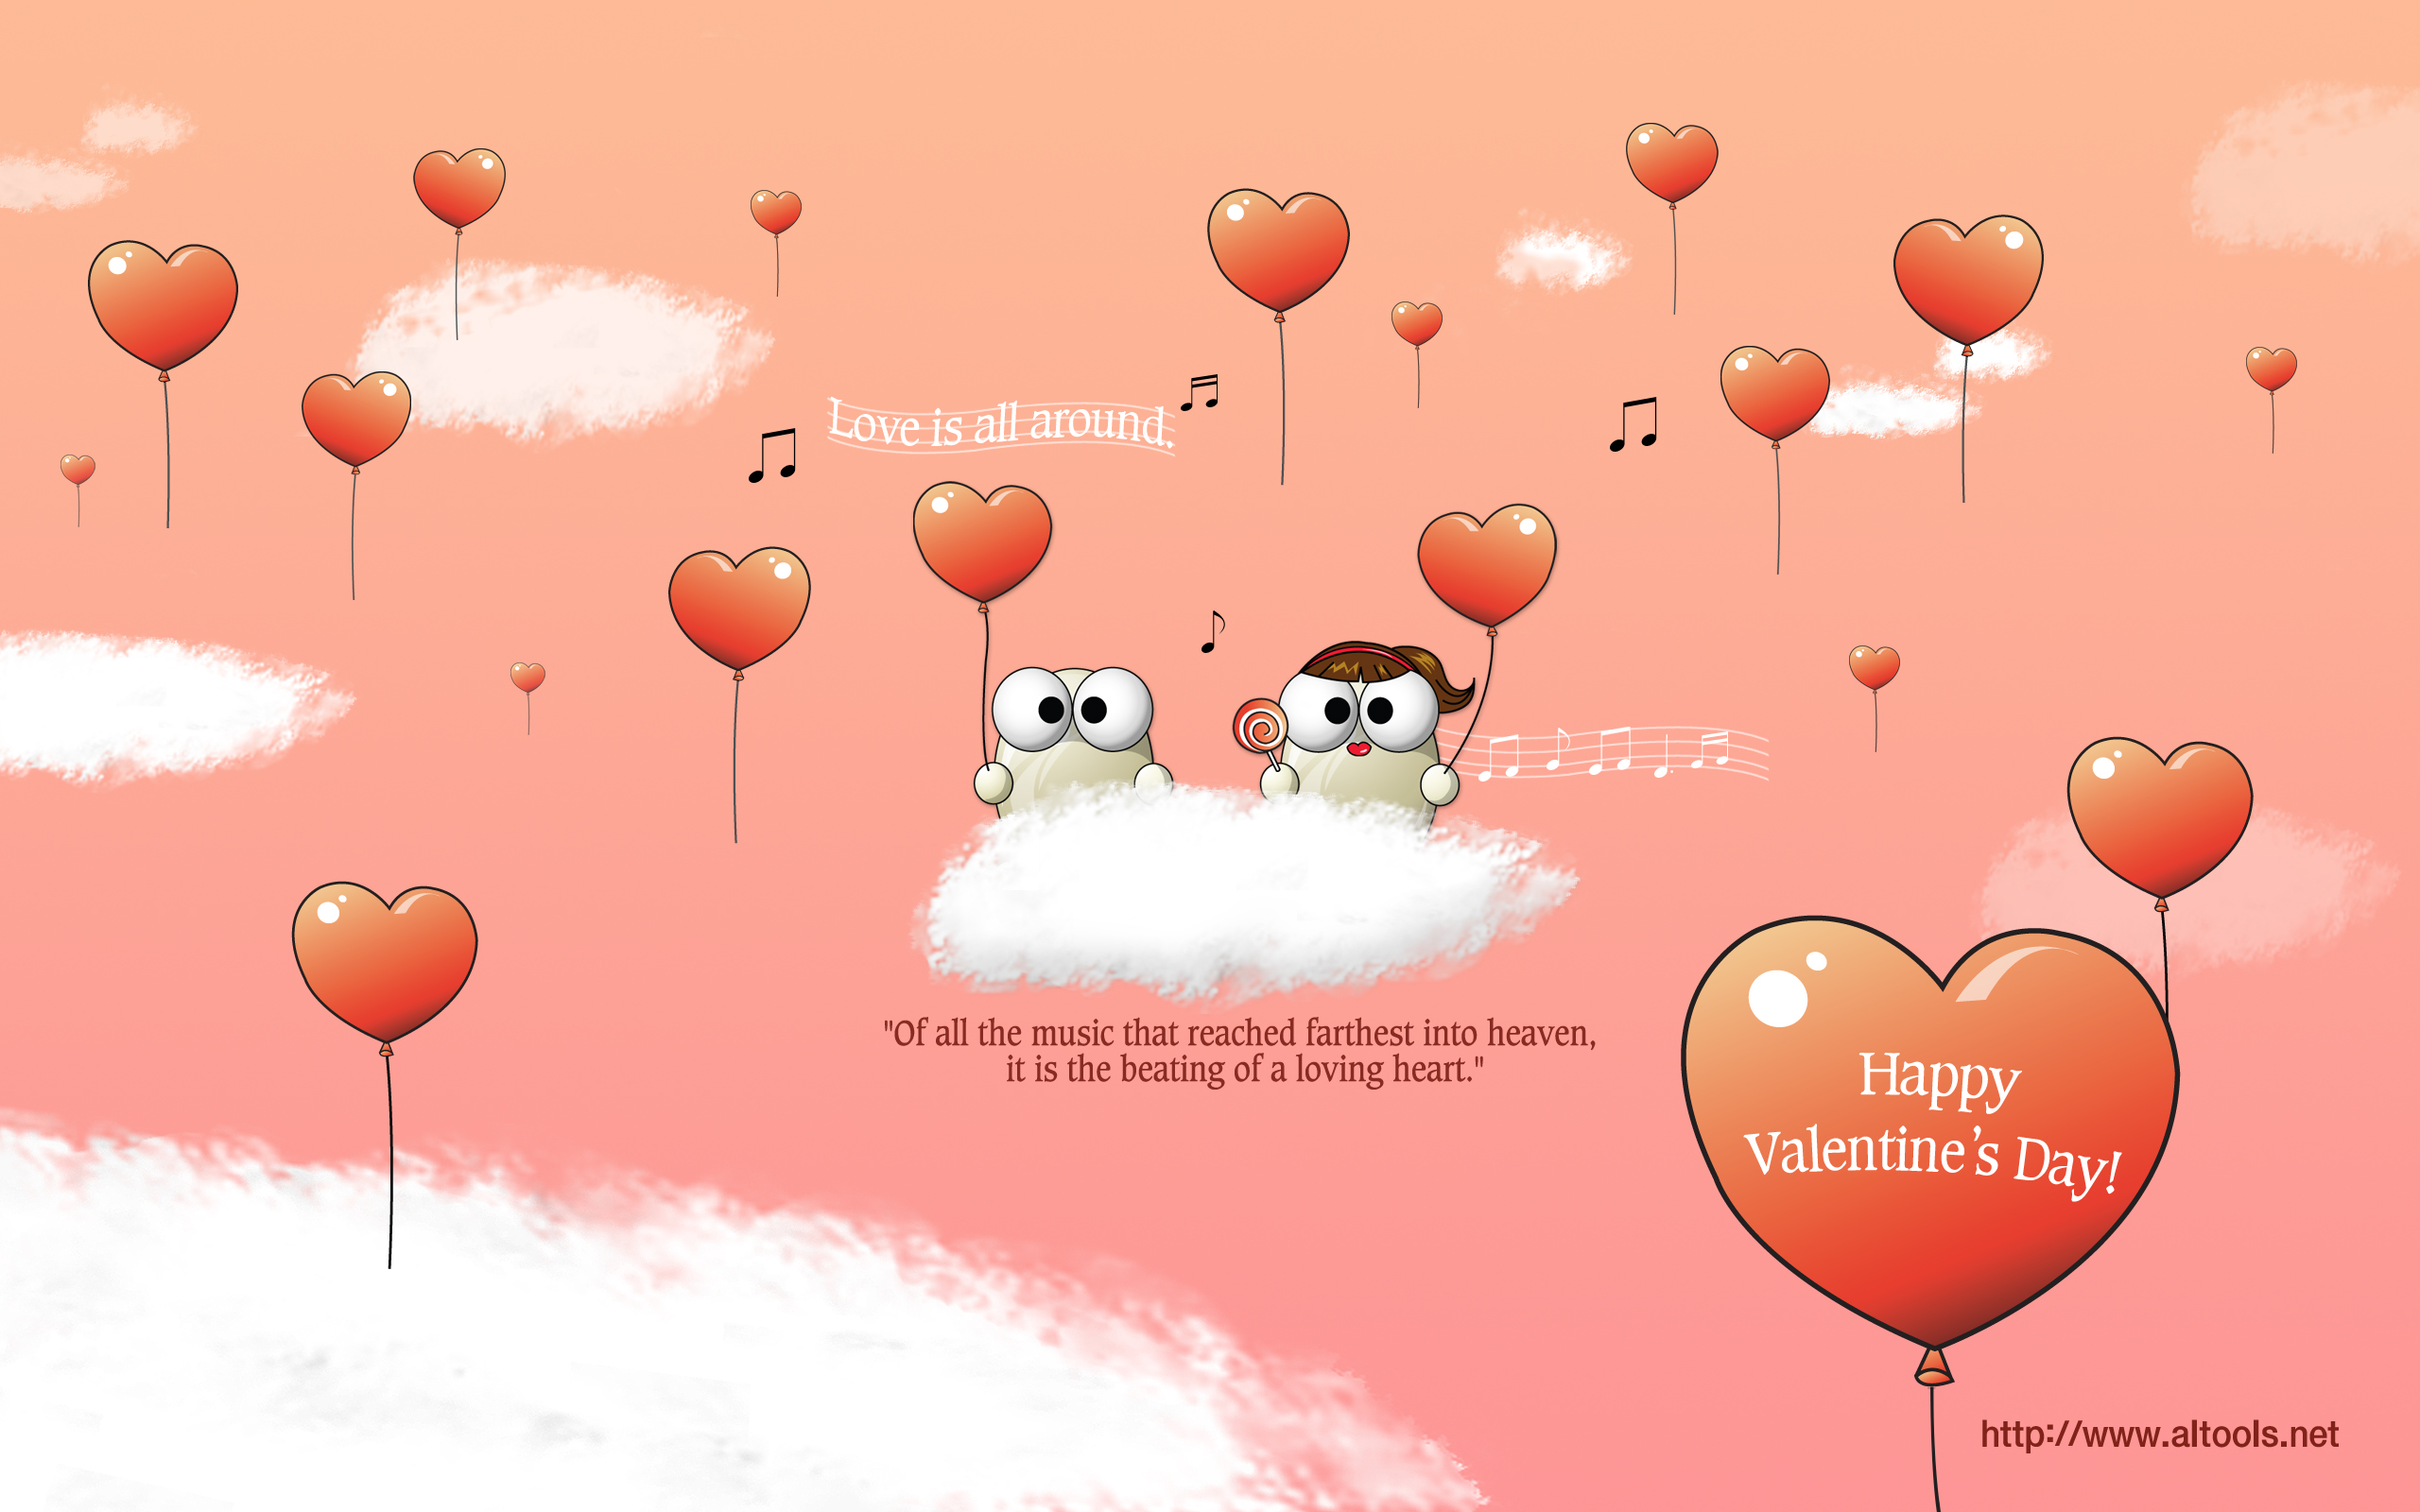 Bild: ALTools: Valentinstag Zitate Wallpapers And Stock Photos. «